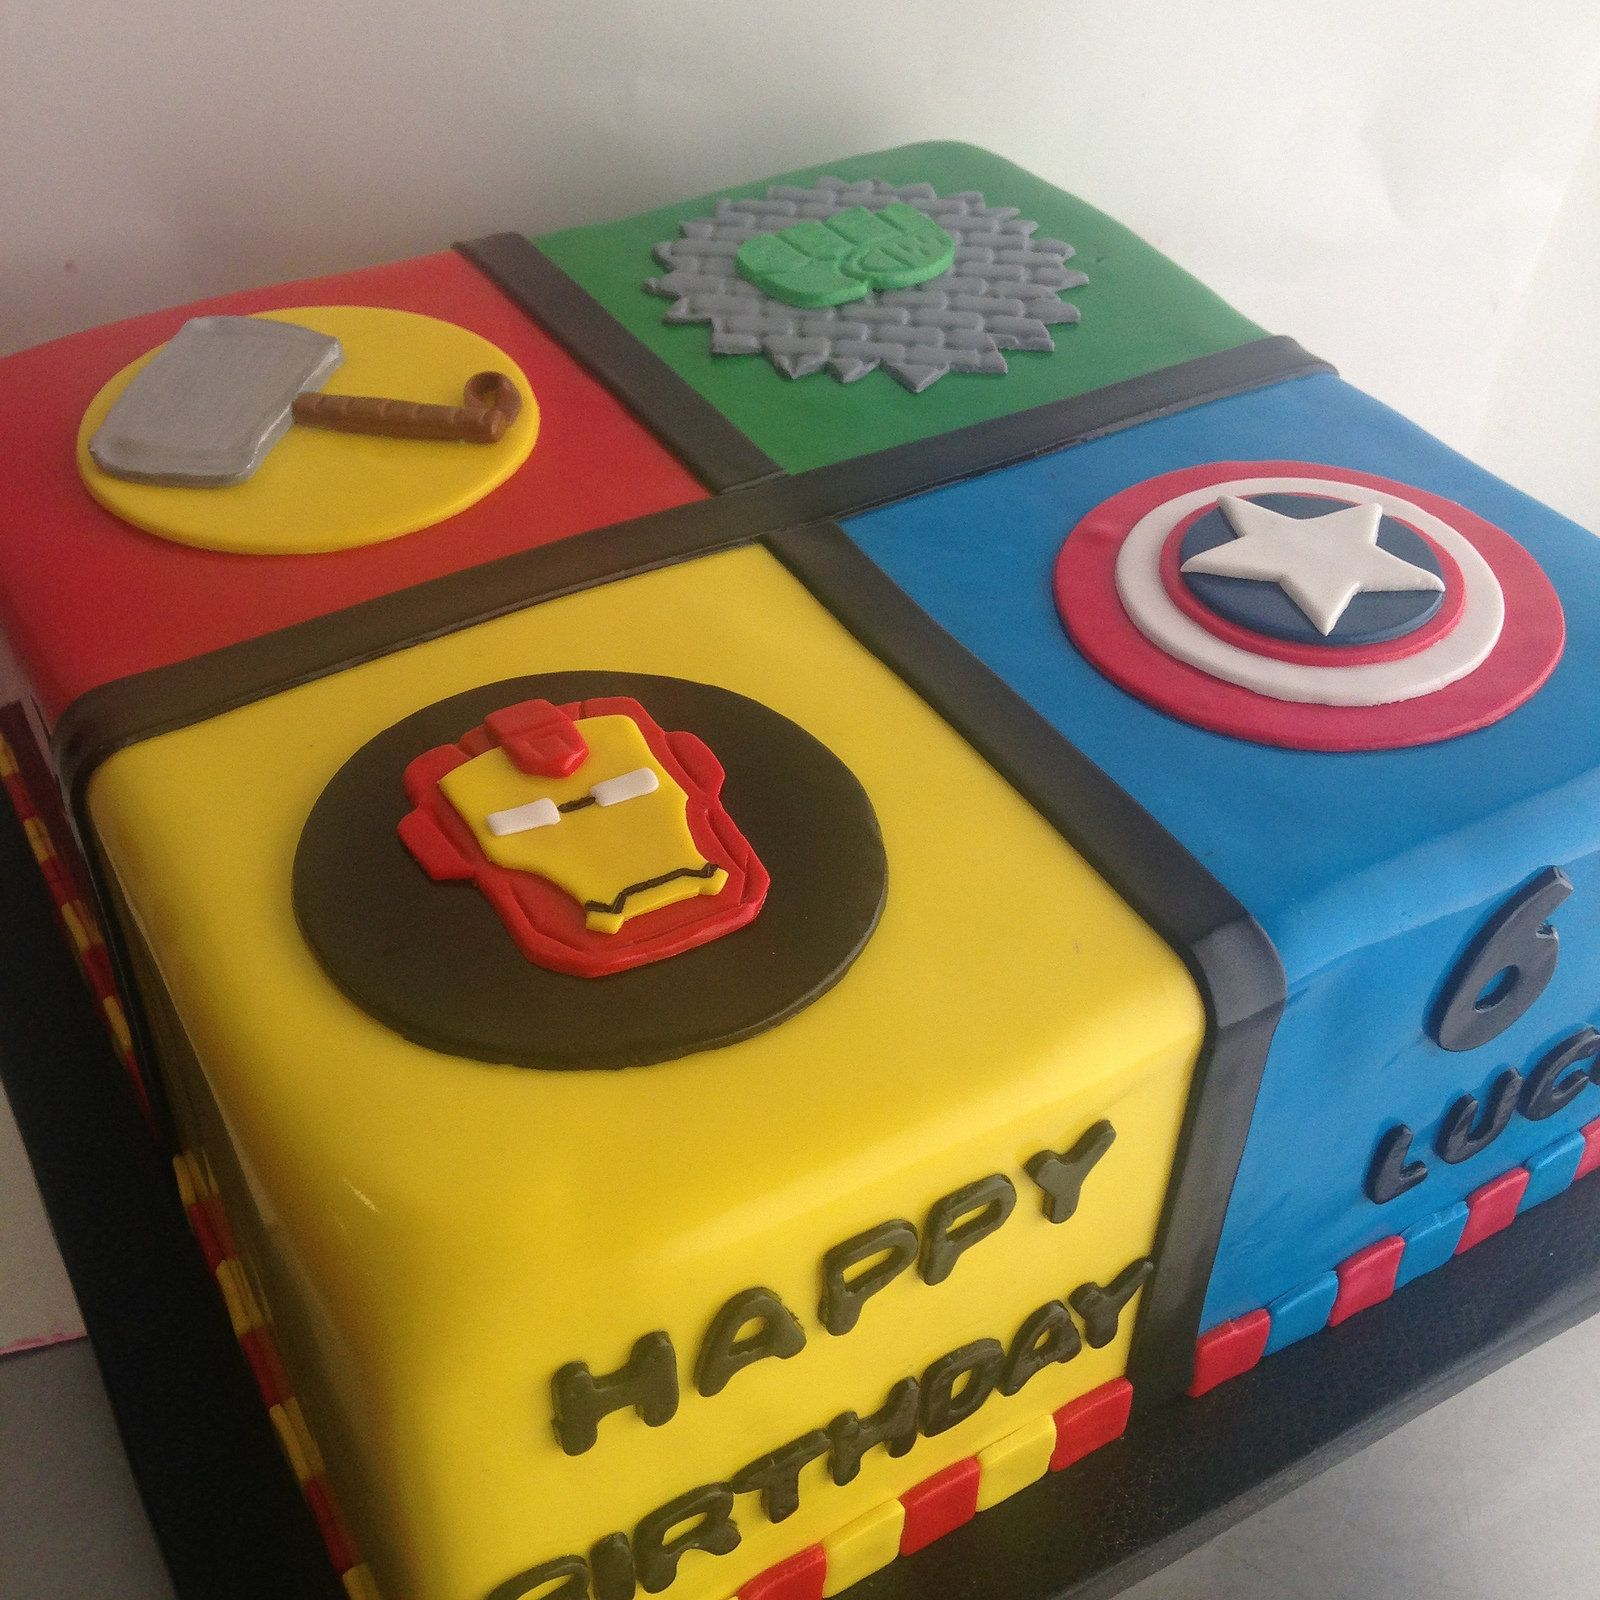 The Avengers cake 3562 Avenger cake Cake and Birthdays